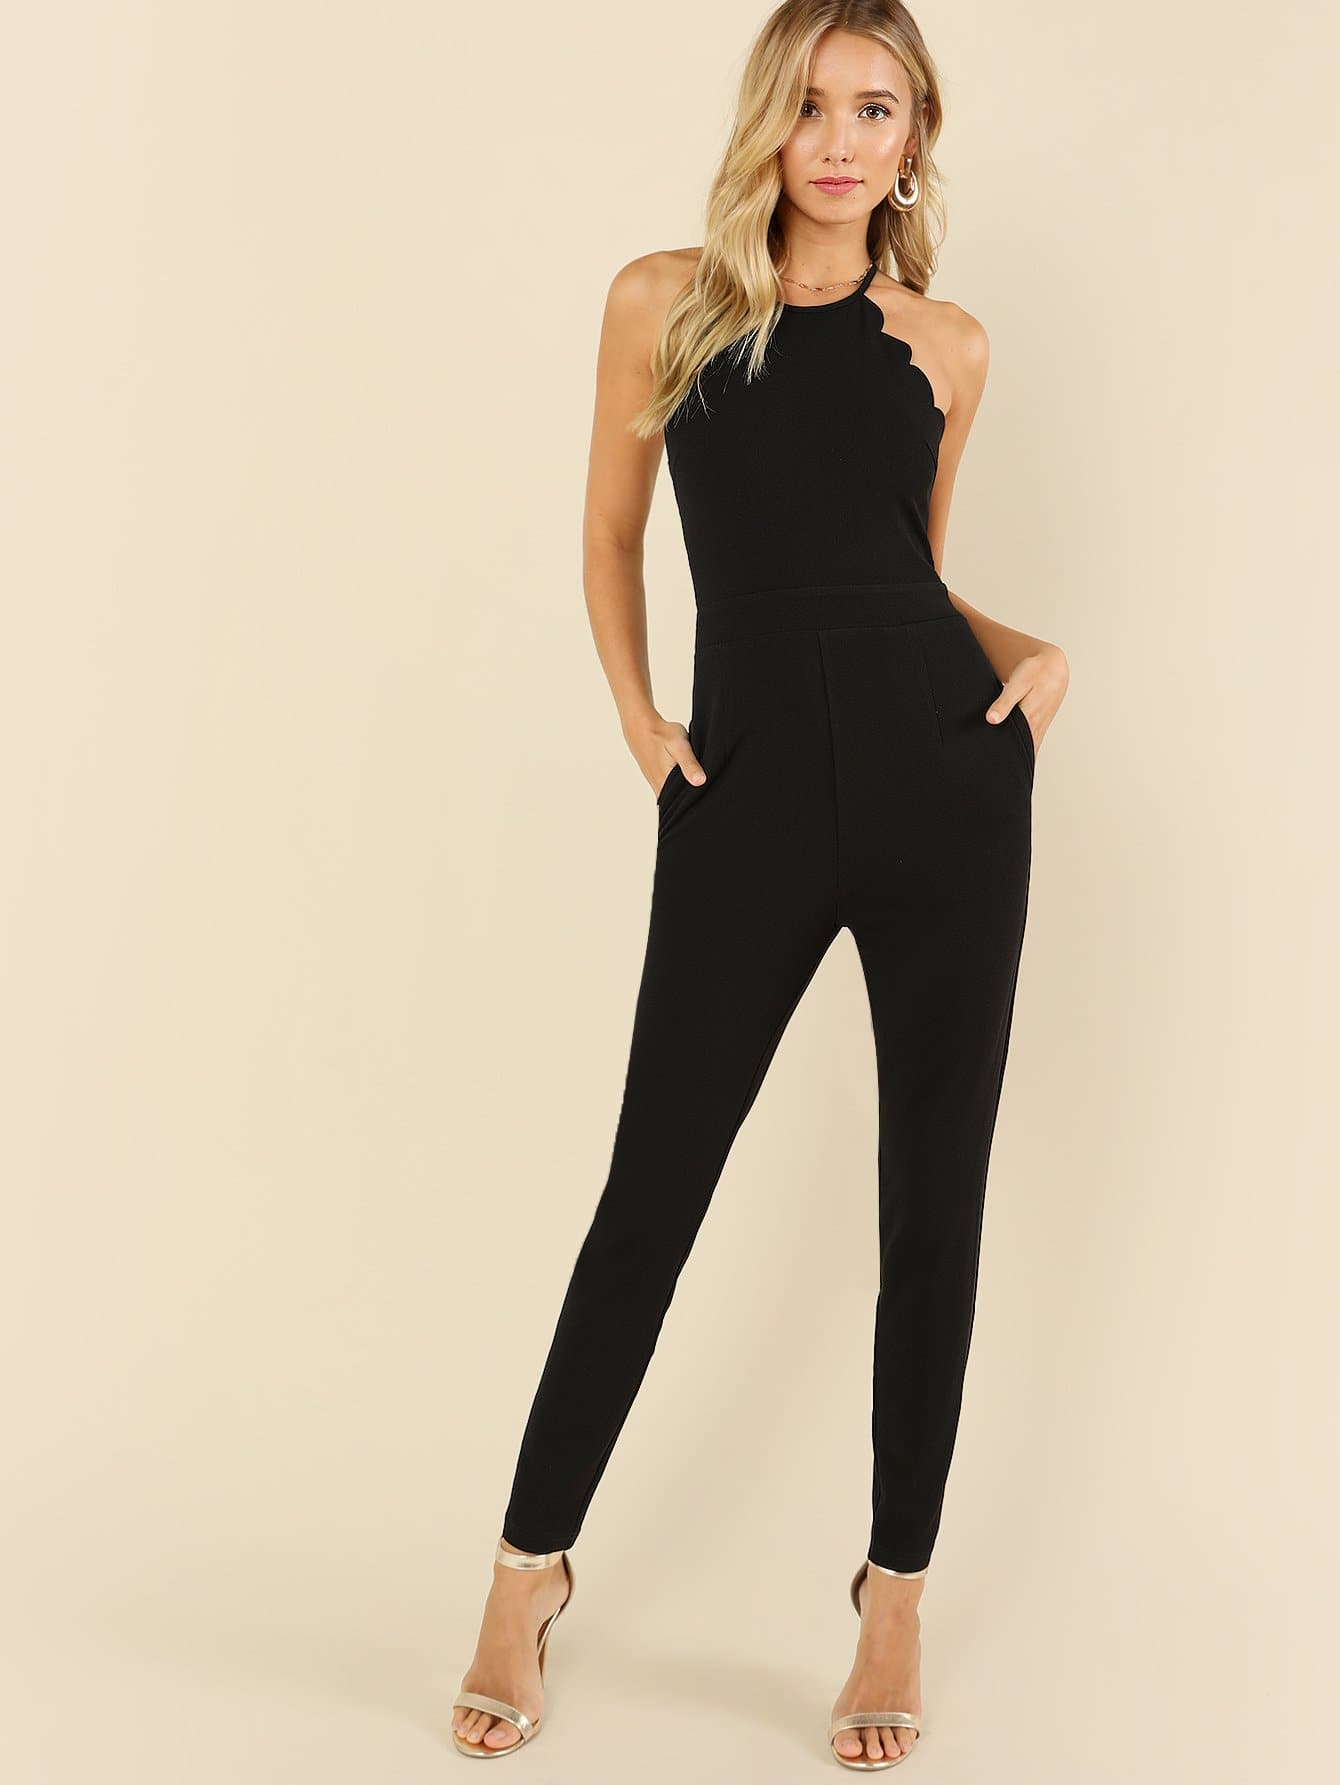 Scallop Edge Halter Tailored Jumpsuit scallop edge halter top